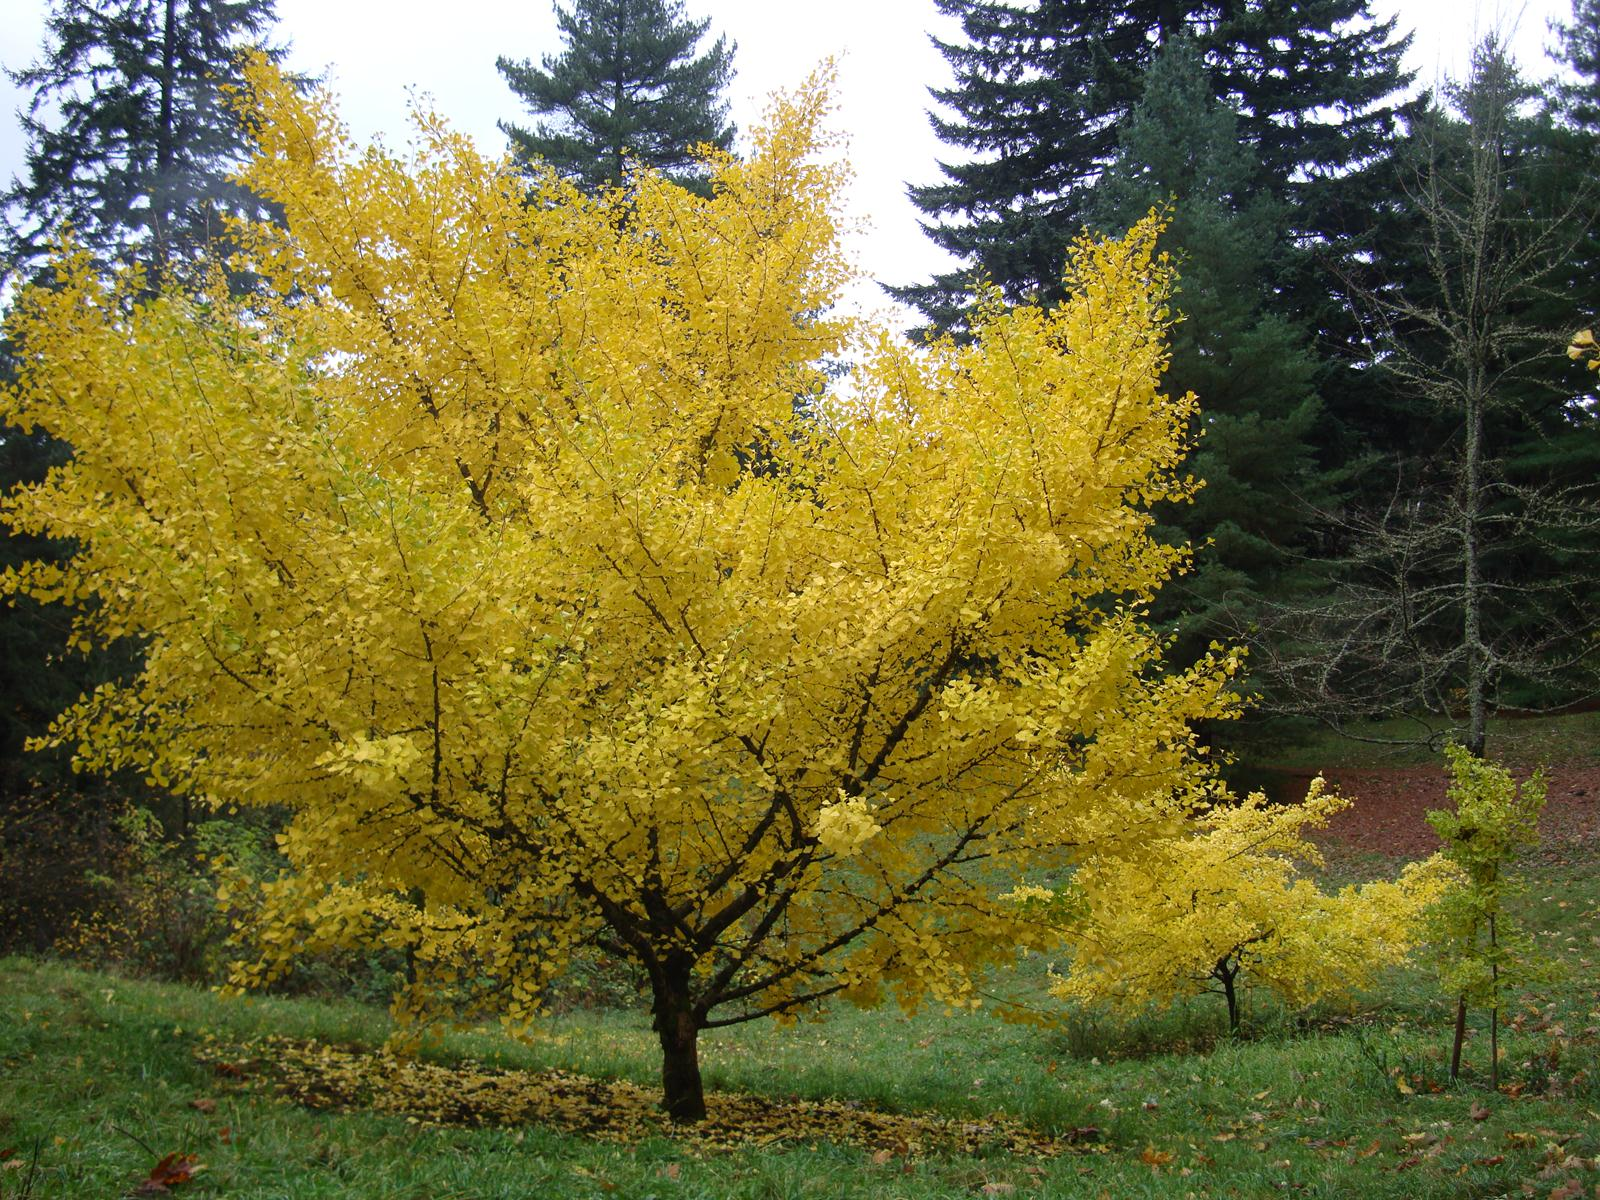 Ginkgo Tree in Full Yellow Glory.